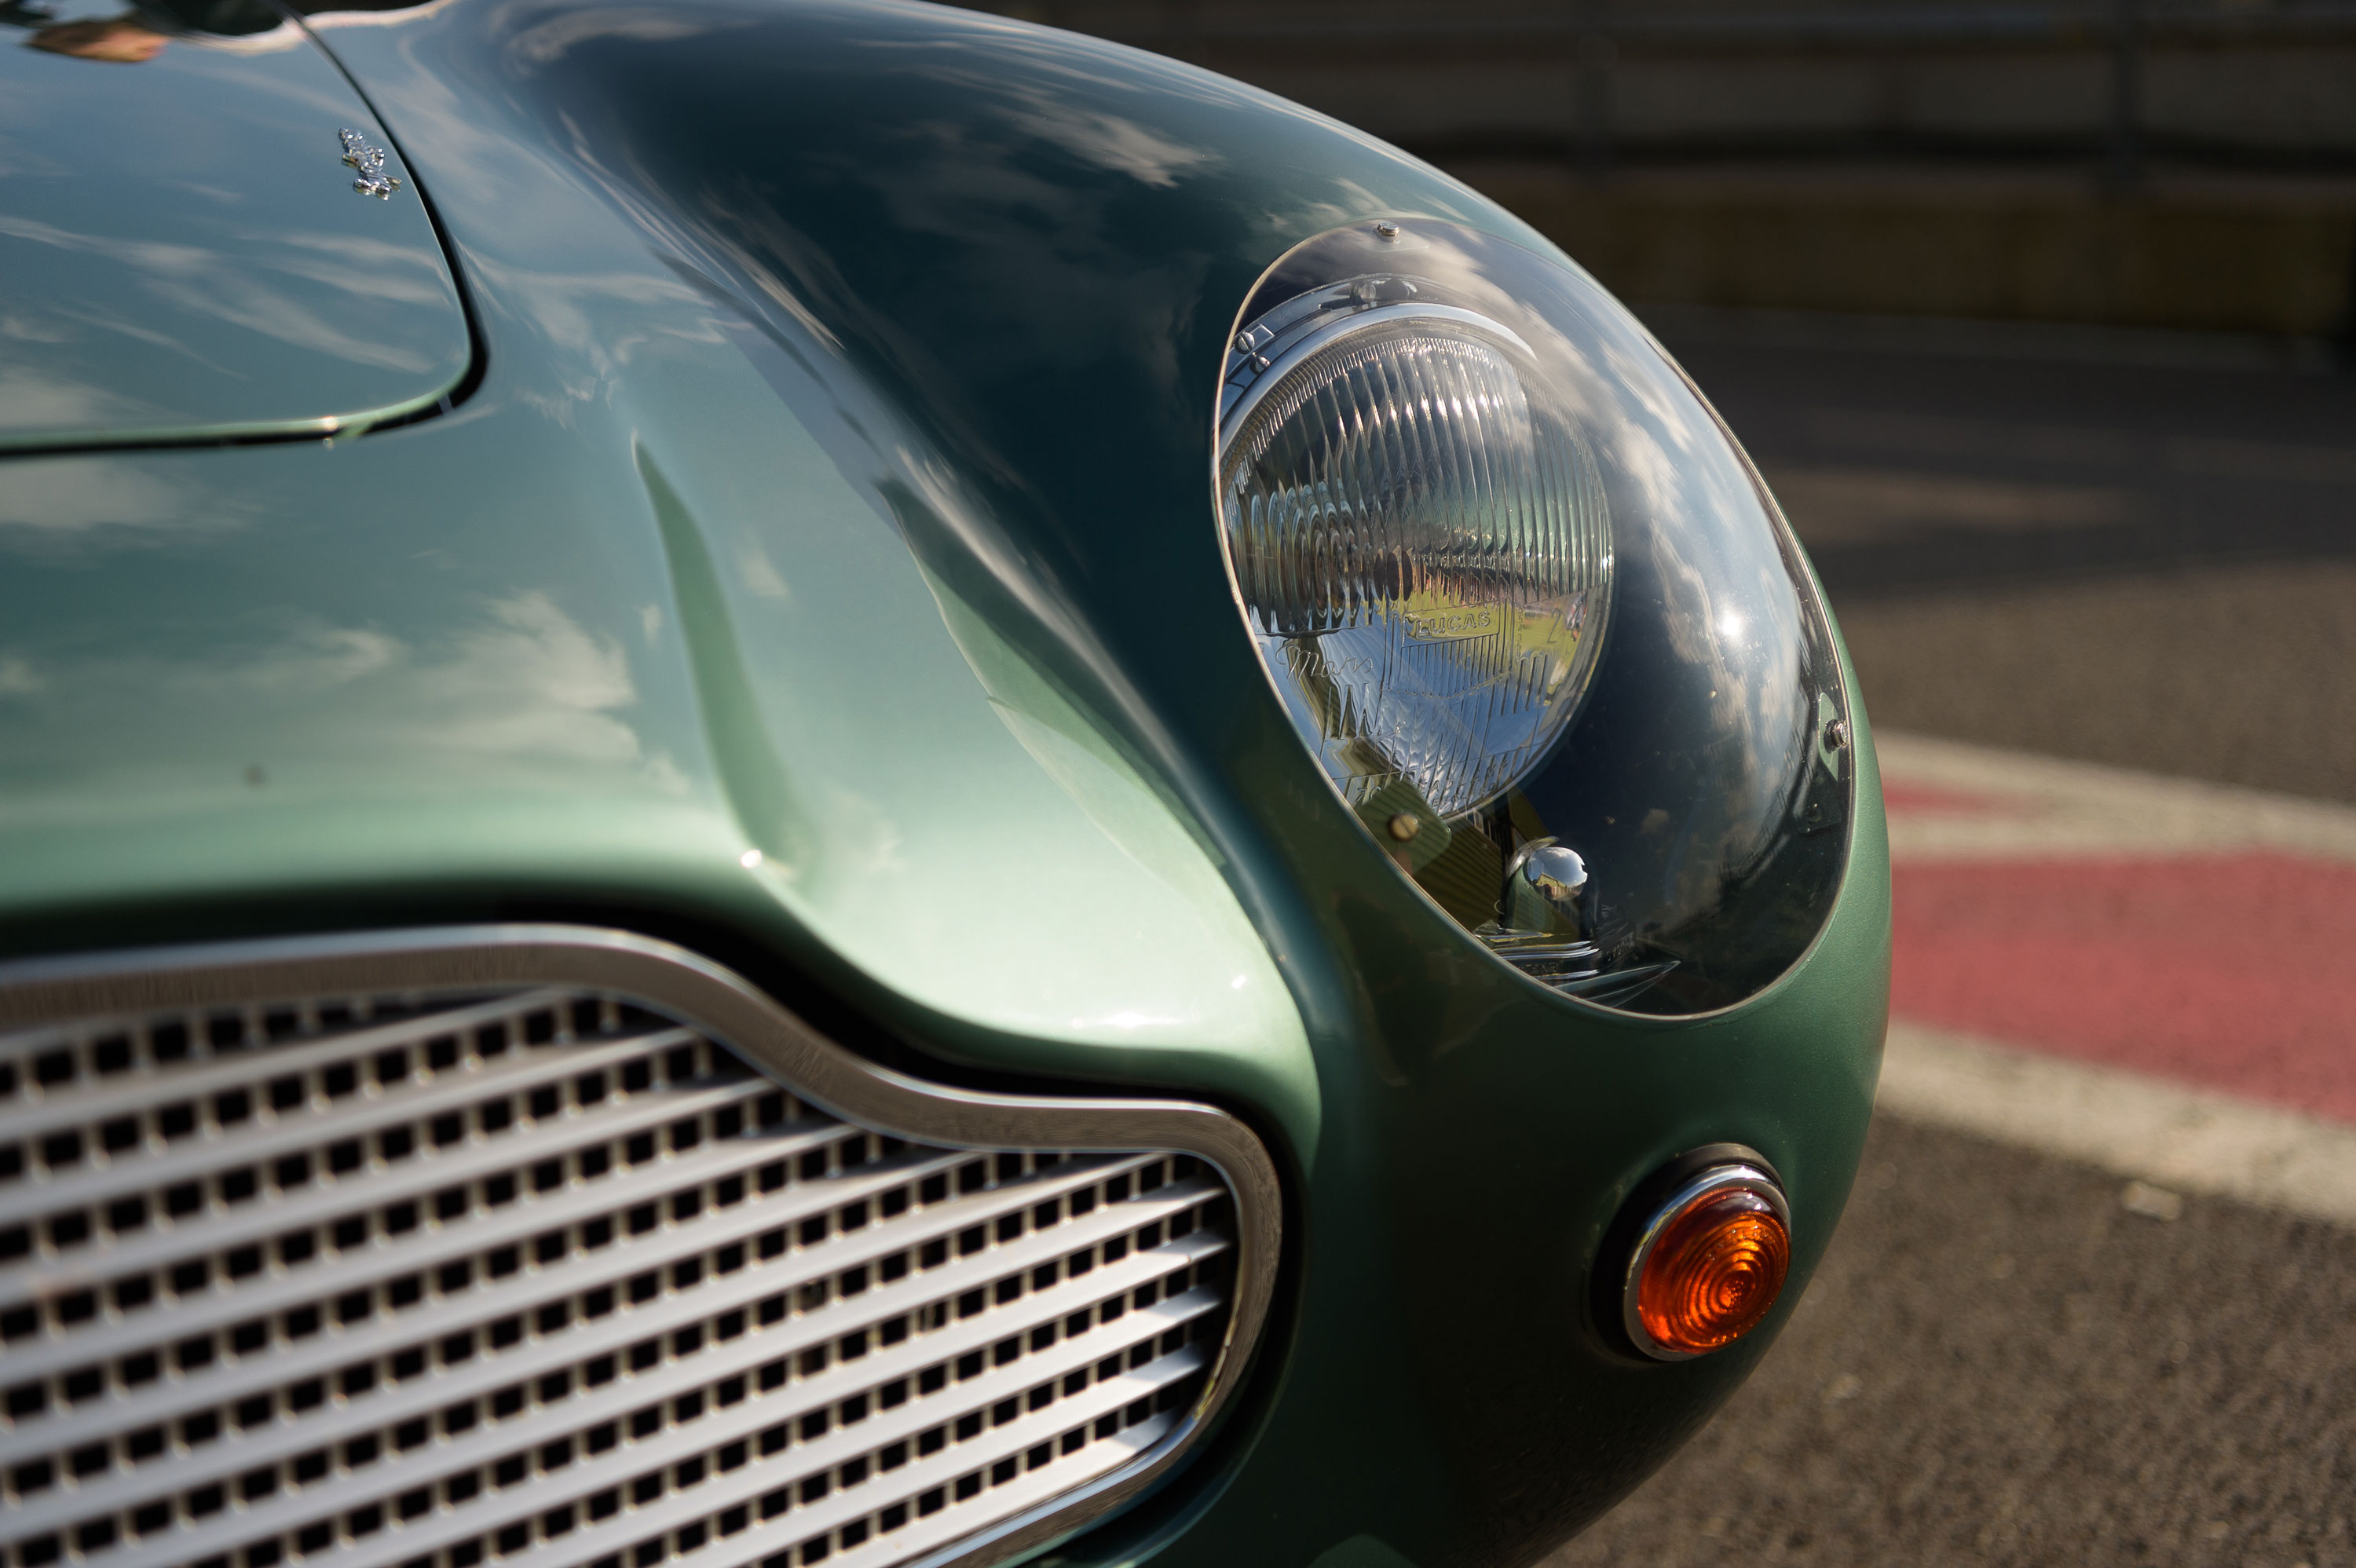 1959 Aston Martin DB4 GT headlight detail